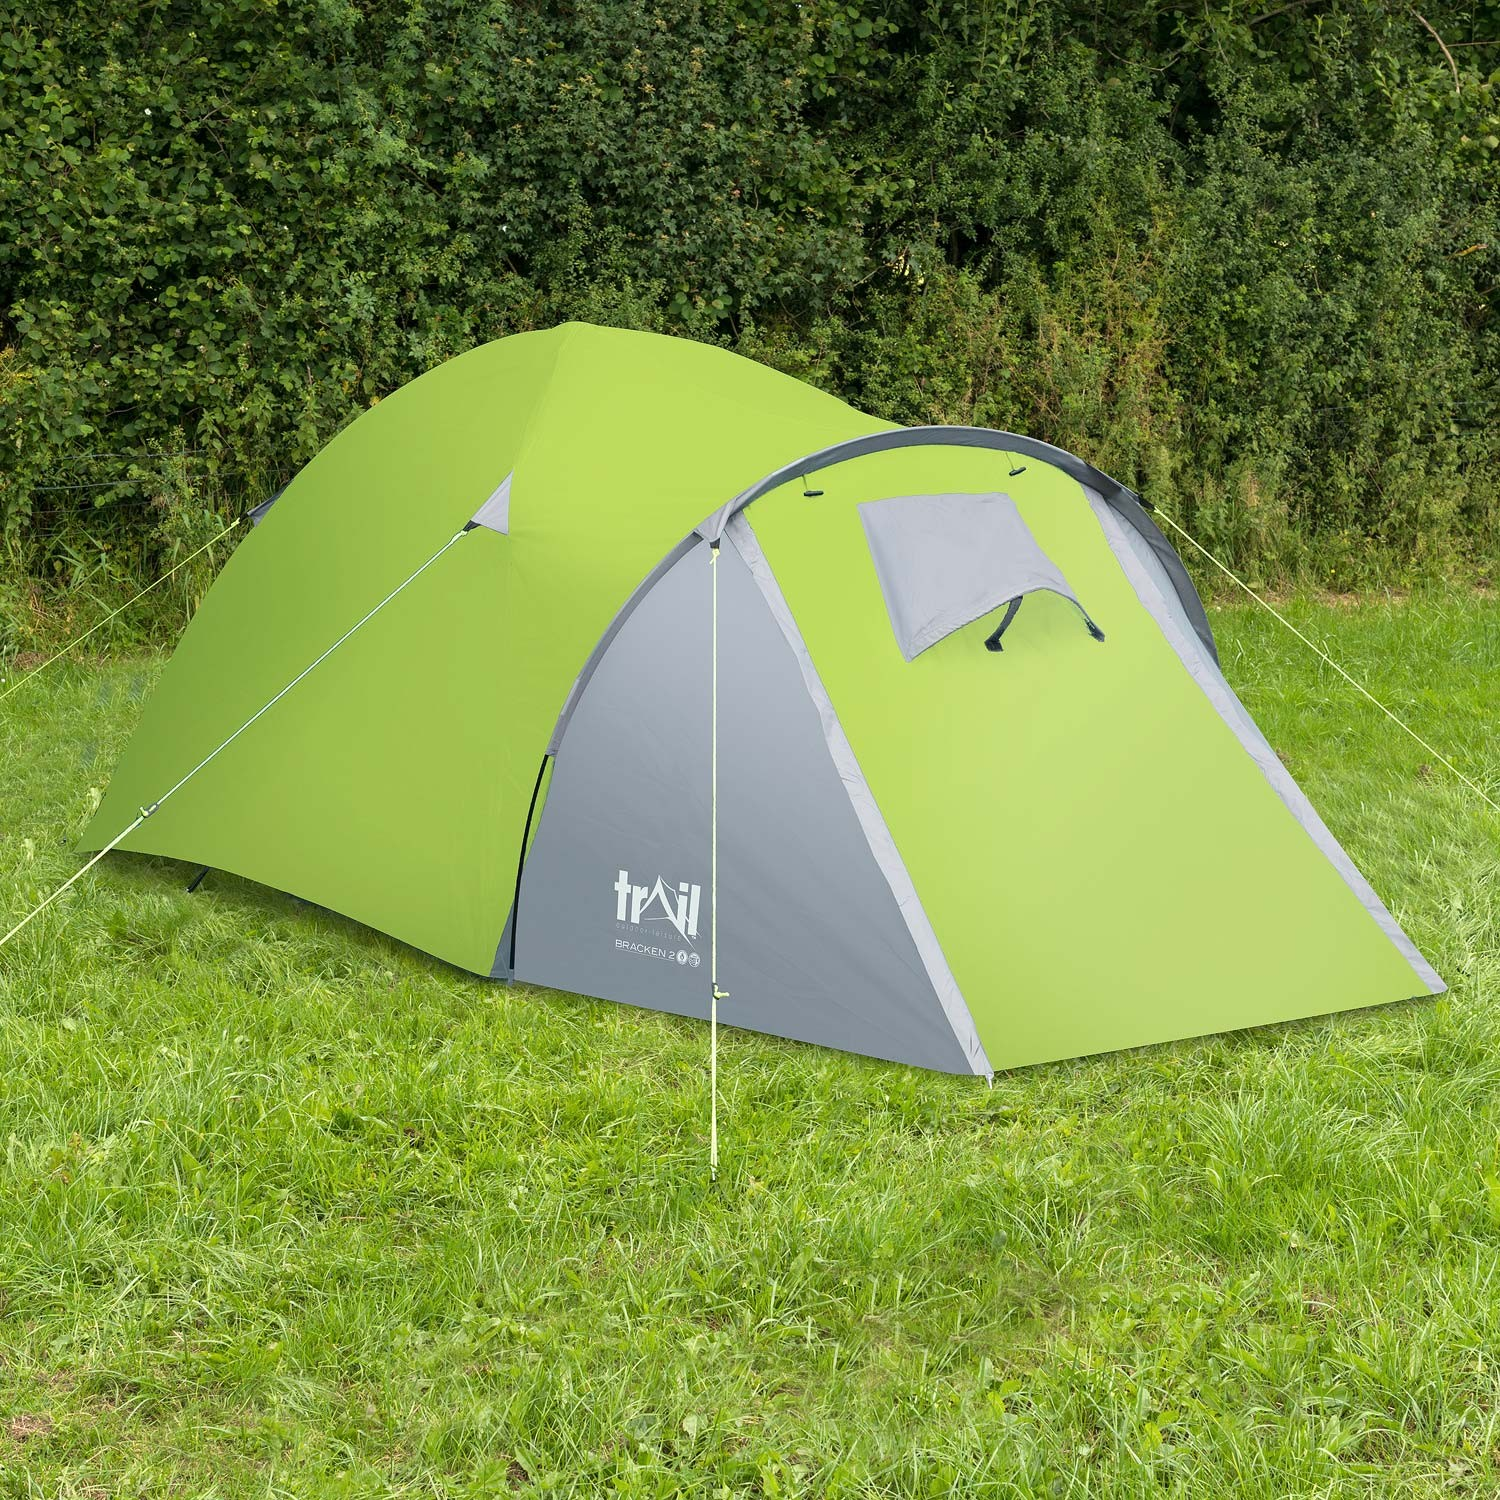 2 Man Tent Double Wall Skin Dome With Porch Two Person Camping Festival Trail